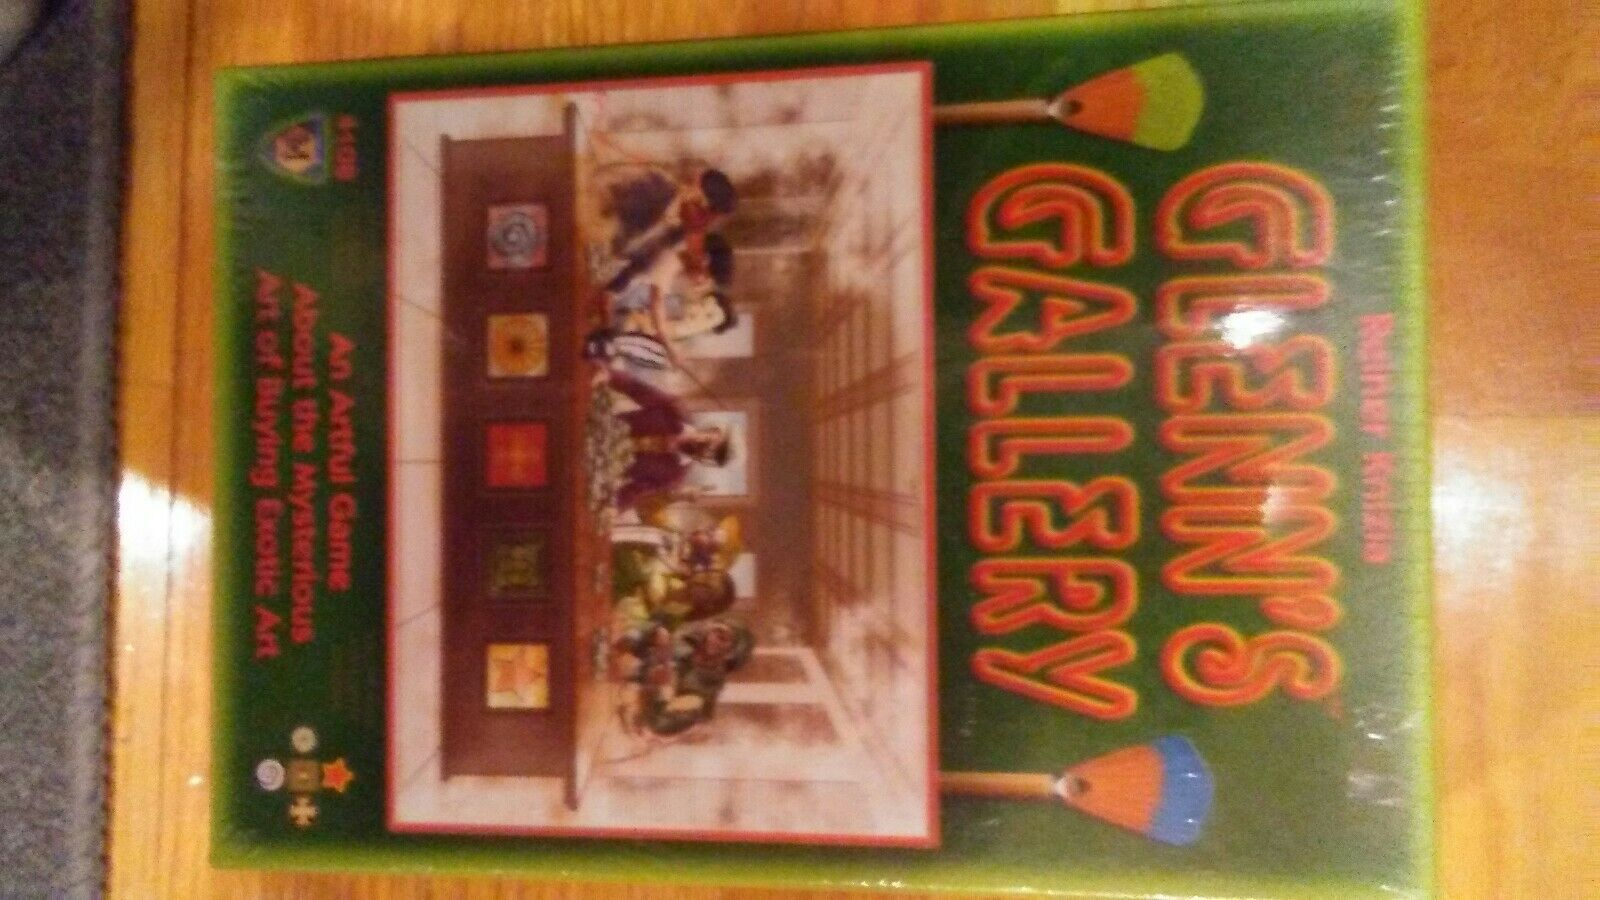 Glenn's Gallery by Mayfair Games 2010 Edition